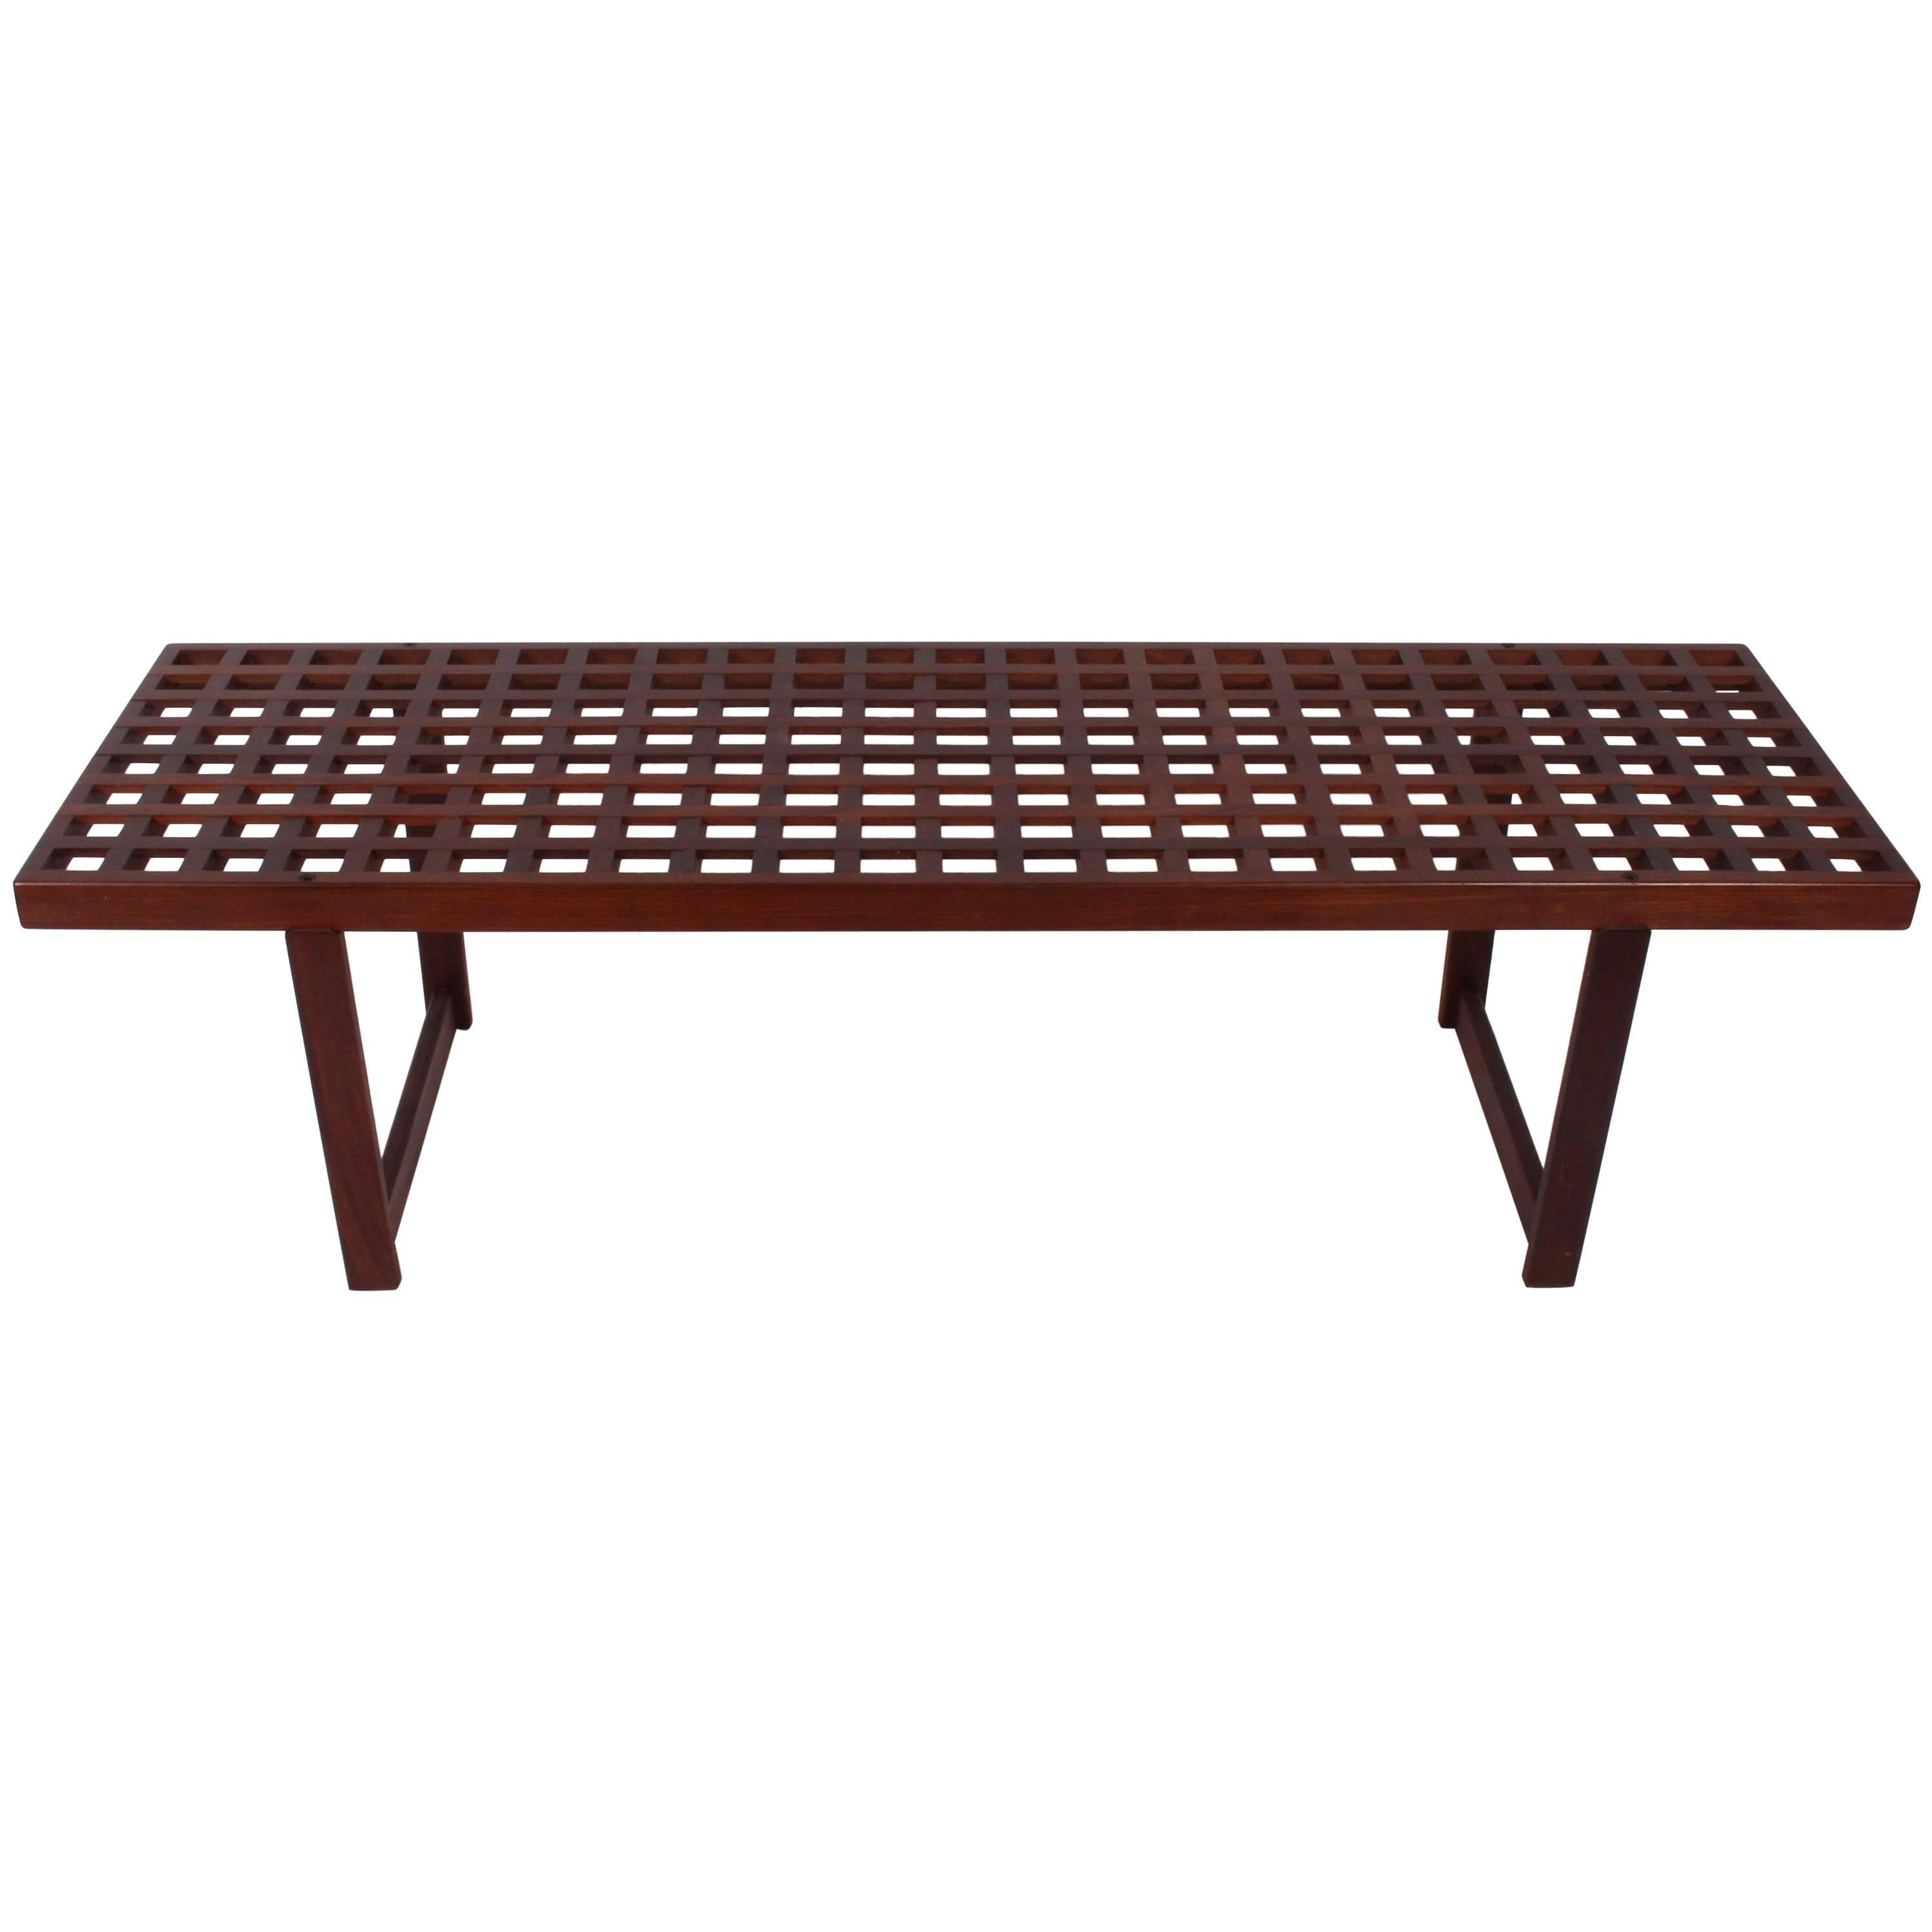 Elegant Peter Løvig Nielsen For Løvig Designs Dark Teak Lattice Coffee Table, C.  1960s For